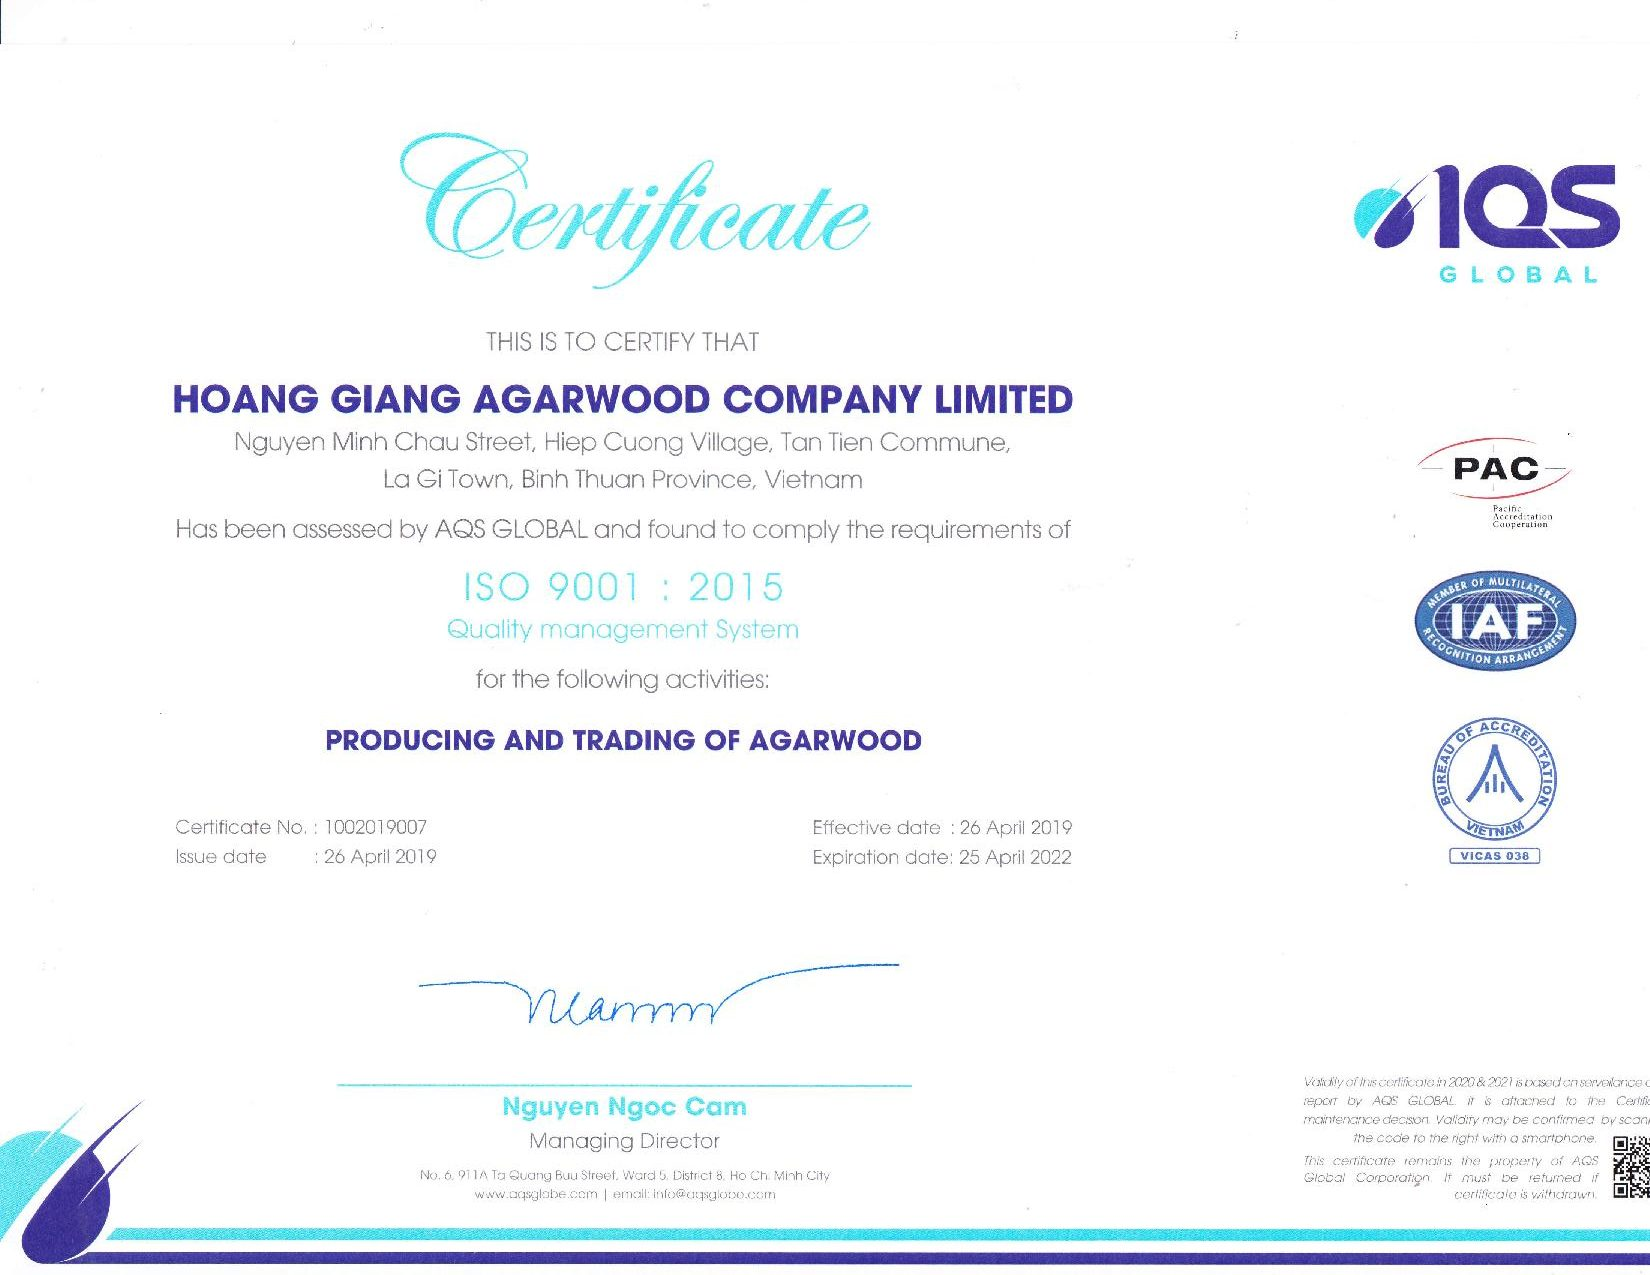 ISO 9001: 2015 Quality Management Certificate Of Hoang